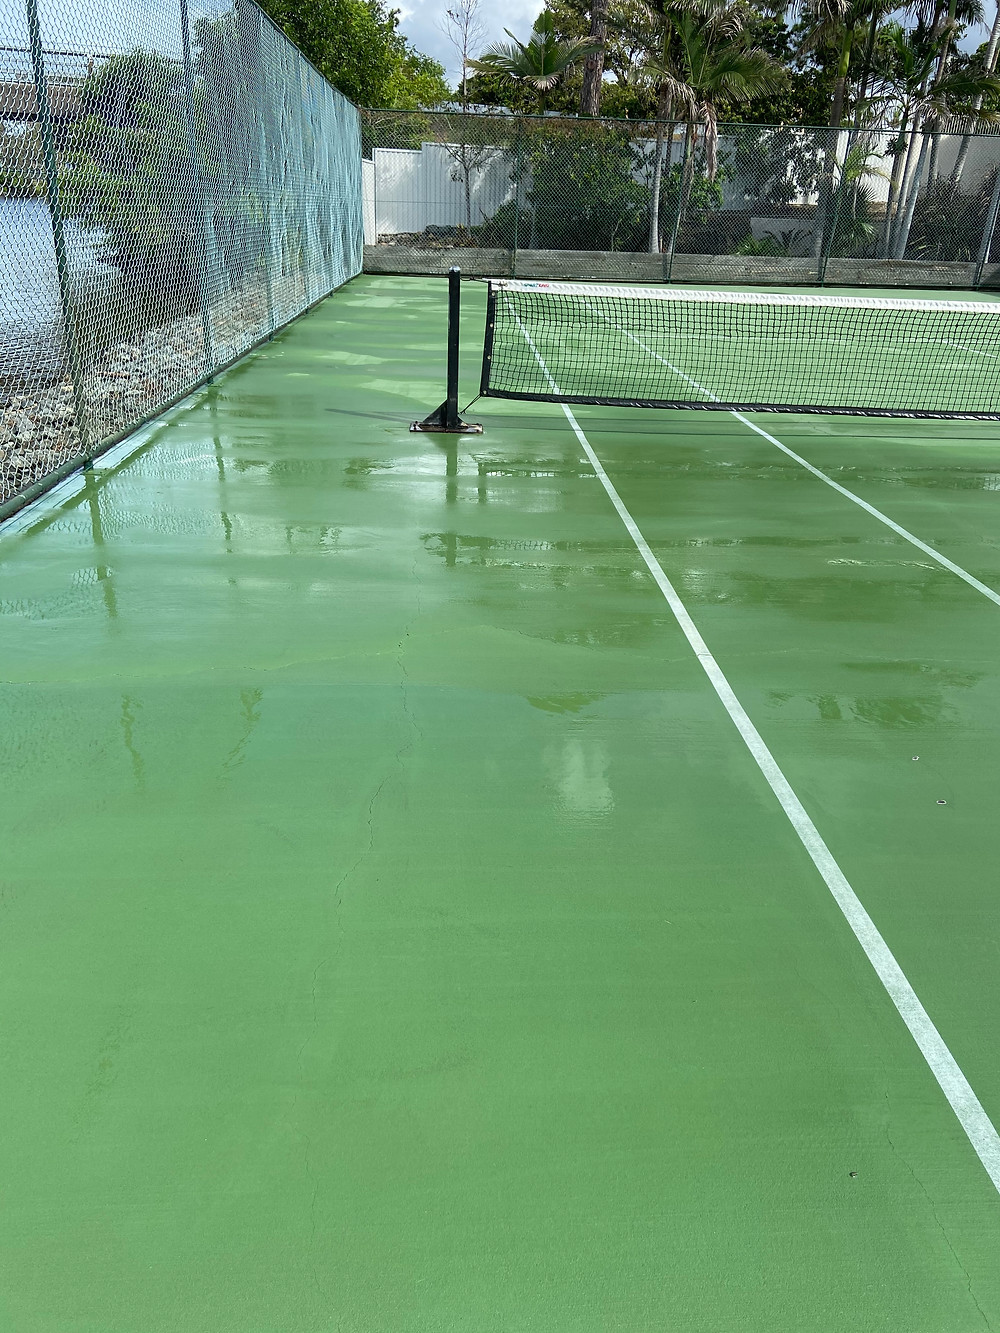 here is the after photo from our tennis court pressure cleaning we complete at sailfish cove on the gold coast. Beautiful spot right on the canal in mermaid waters.